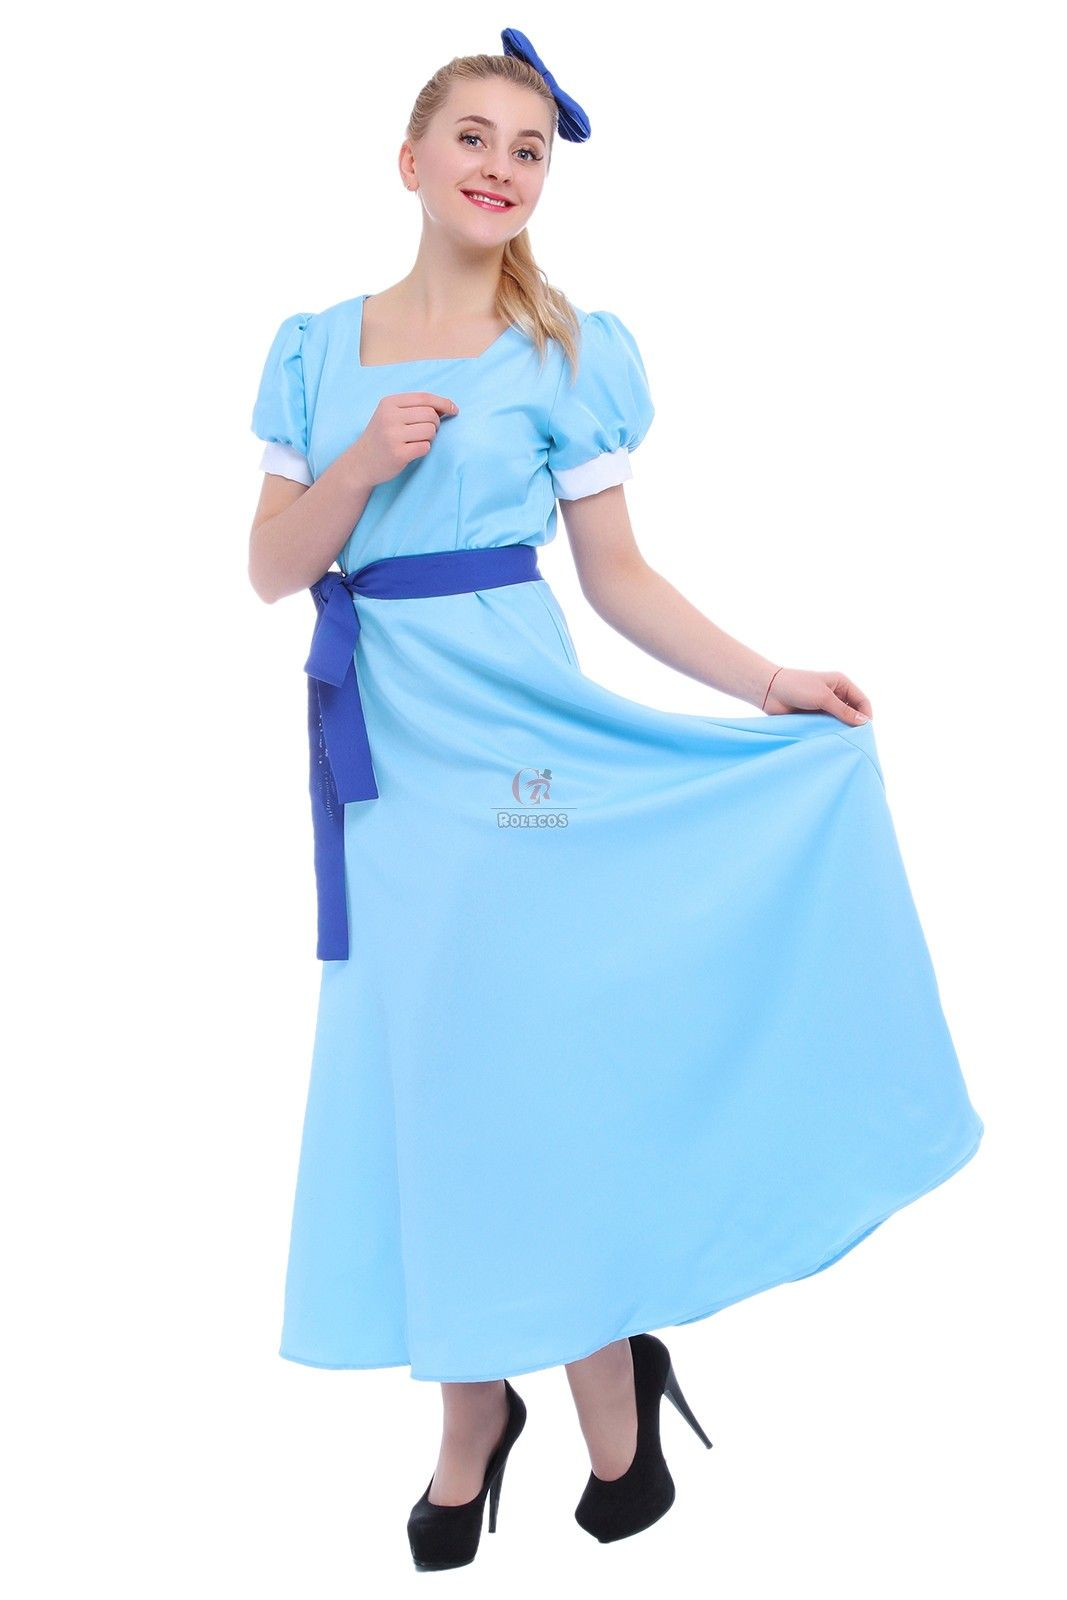 Buy Peter Pan Wendy Darling Cosplay Costume - RoleCosplay.com  sc 1 st  Pinterest : wendy from peter pan costume  - Germanpascual.Com